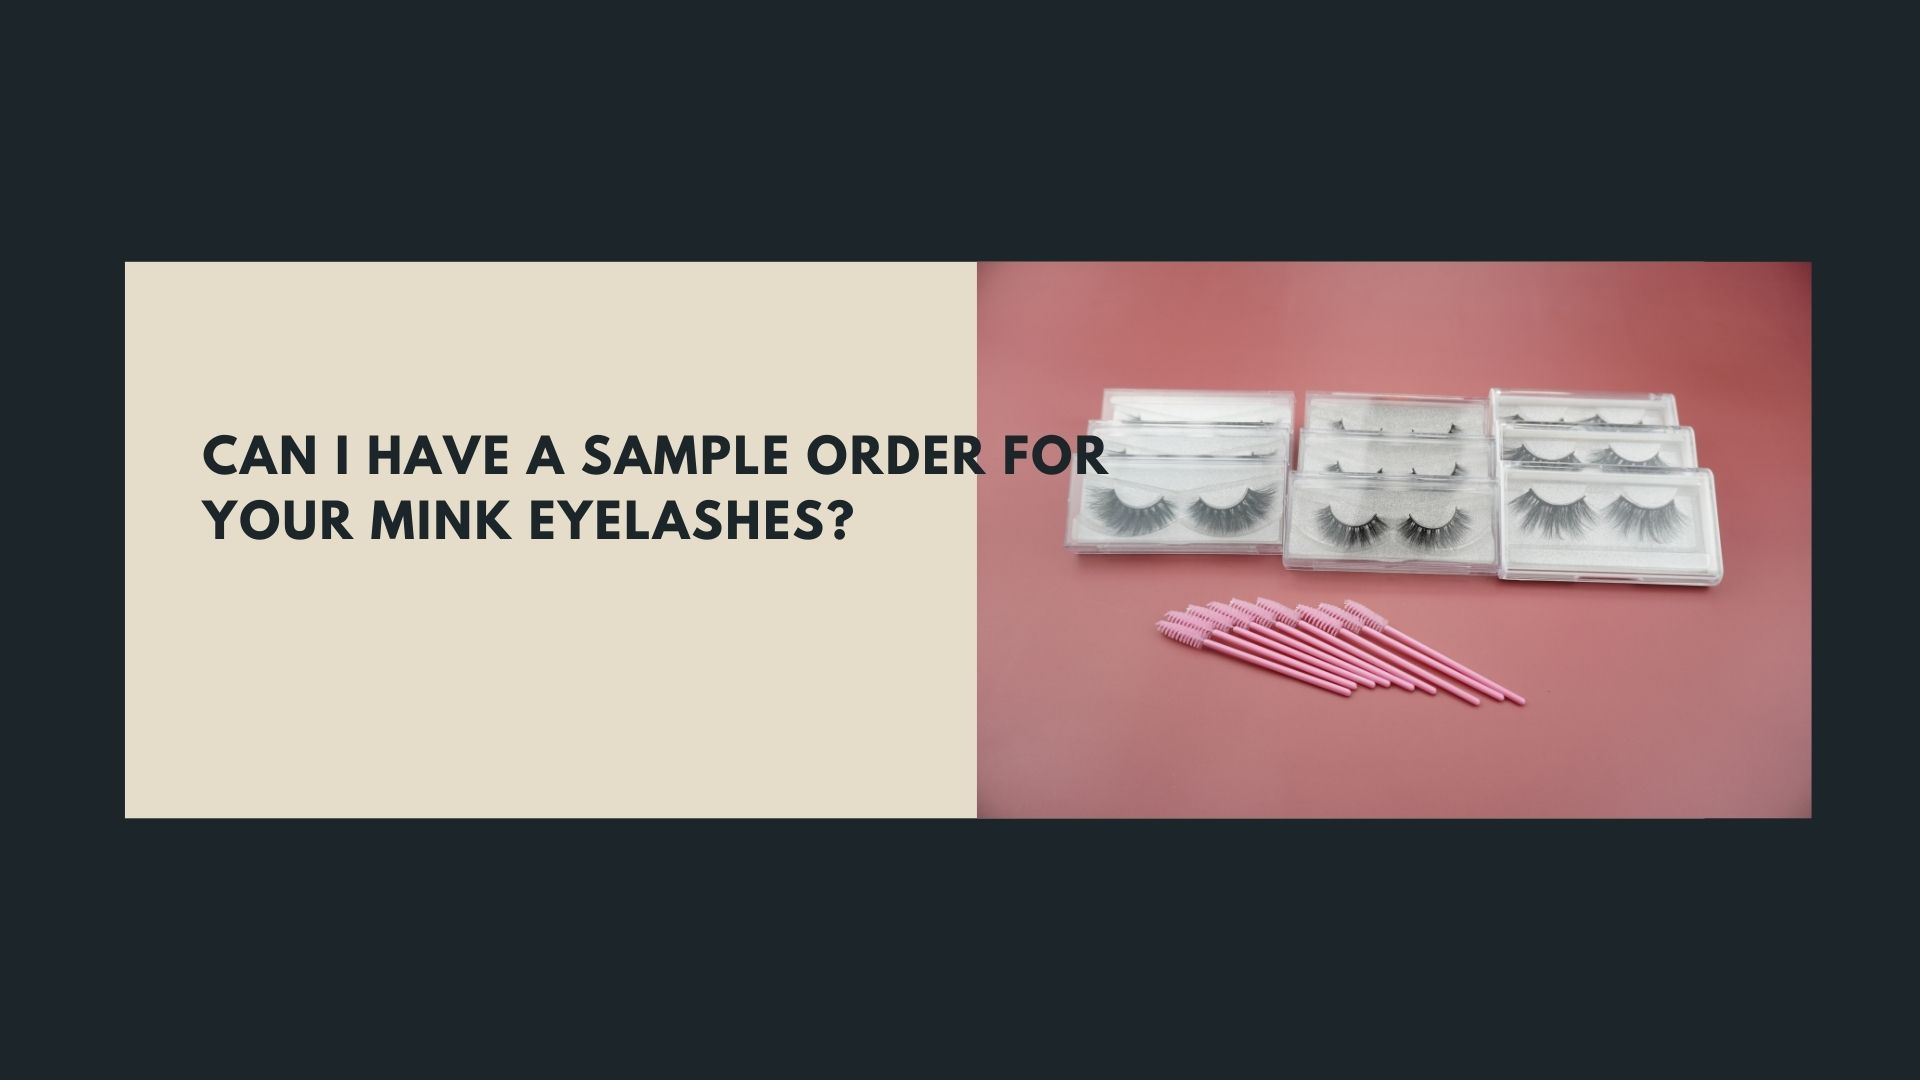 Can i have a sample order for your mink eyelashes